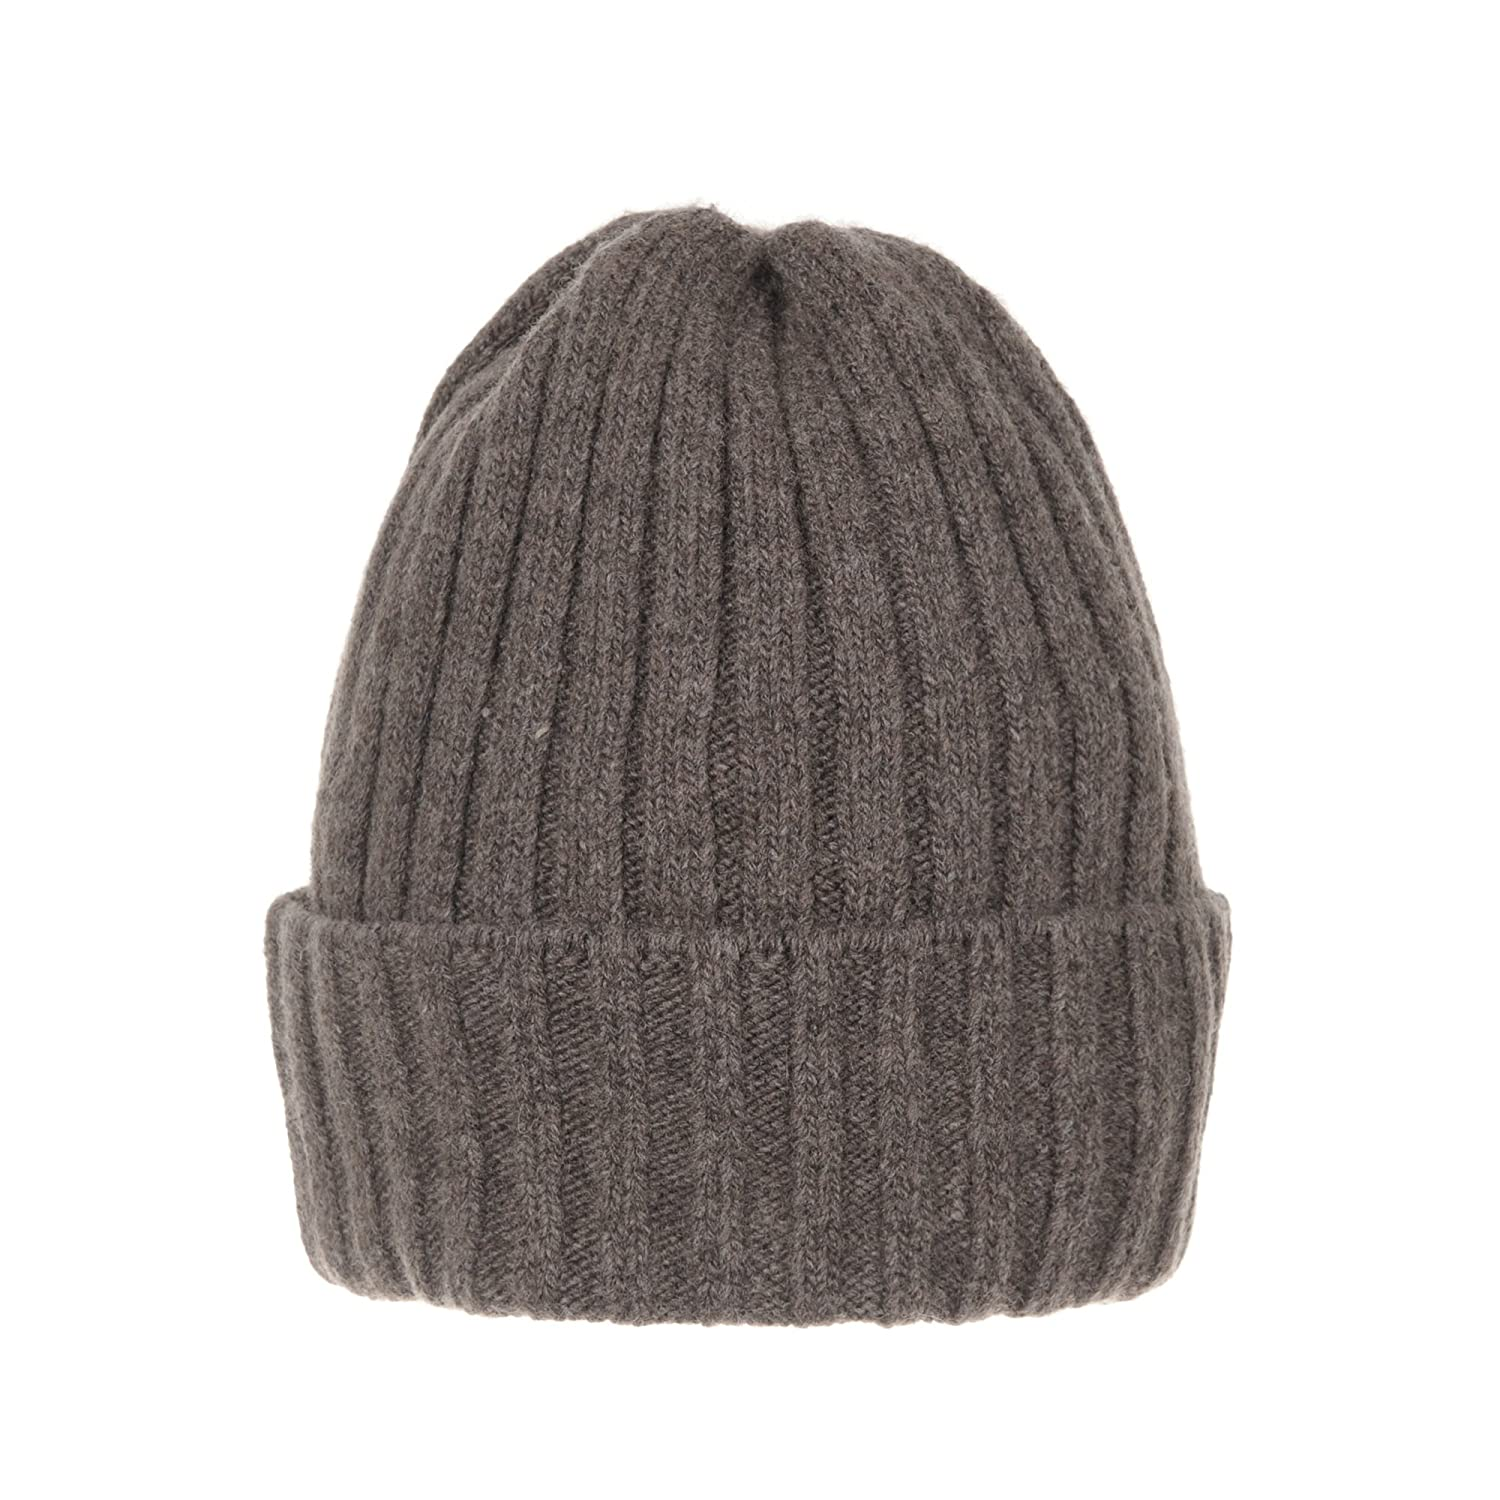 WITHMOONS Wool Ribbed Knitted Beanie Hat Slouchy Bobble Pom AC5476 (Brown)  at Amazon Women s Clothing store  5ae925b9555